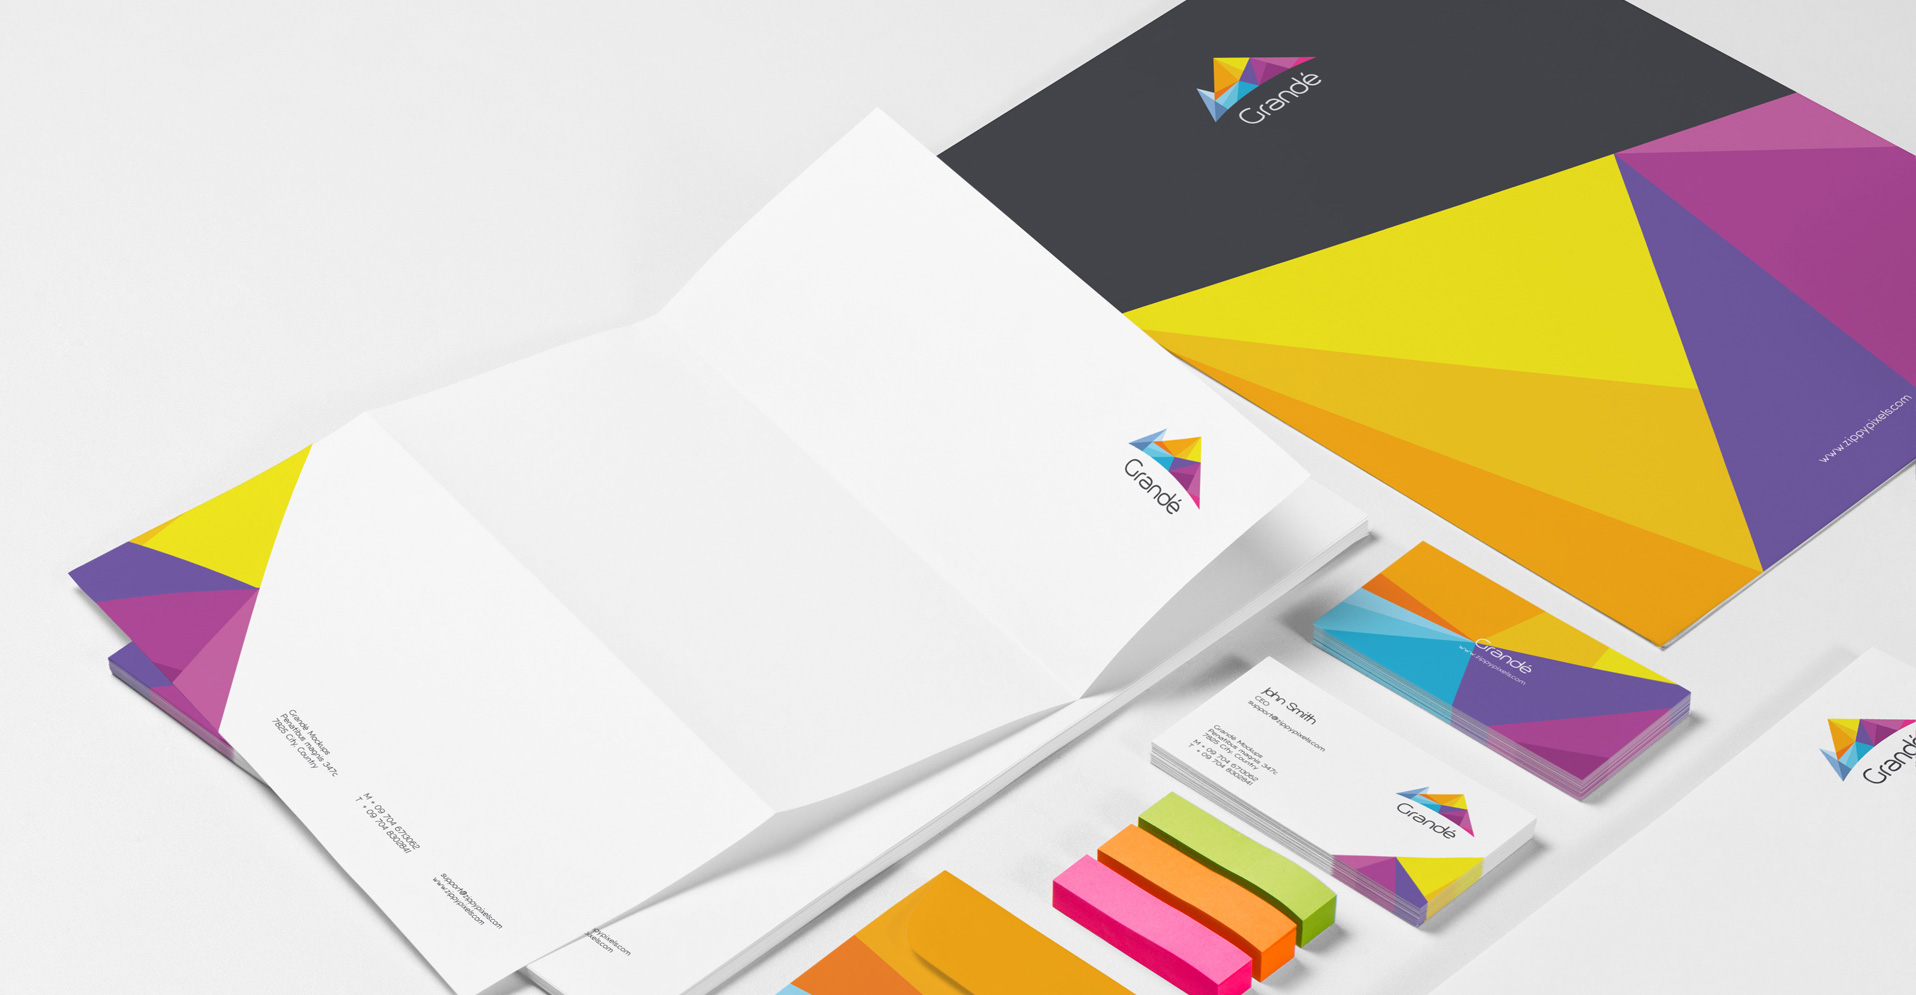 Photorealistic Stationery Branding PSD Mockups, A4 Letterhead, Business Card, Envelop, File Cover, CD Cover etc.